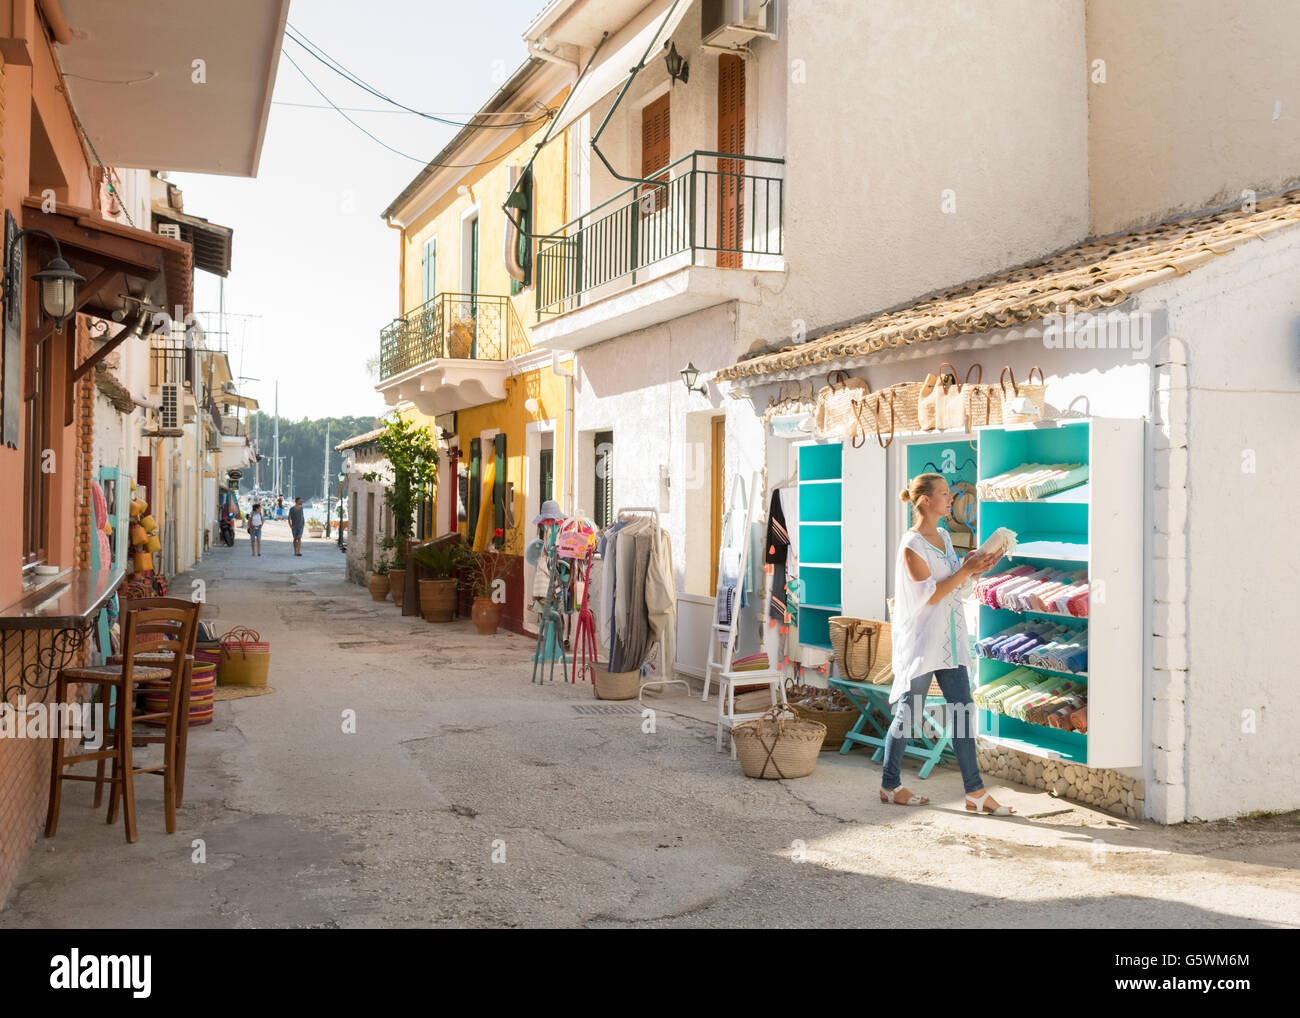 Lakka, Paxos, Greece - young woman setting up her shop selling clothing and accessories Stock Photo